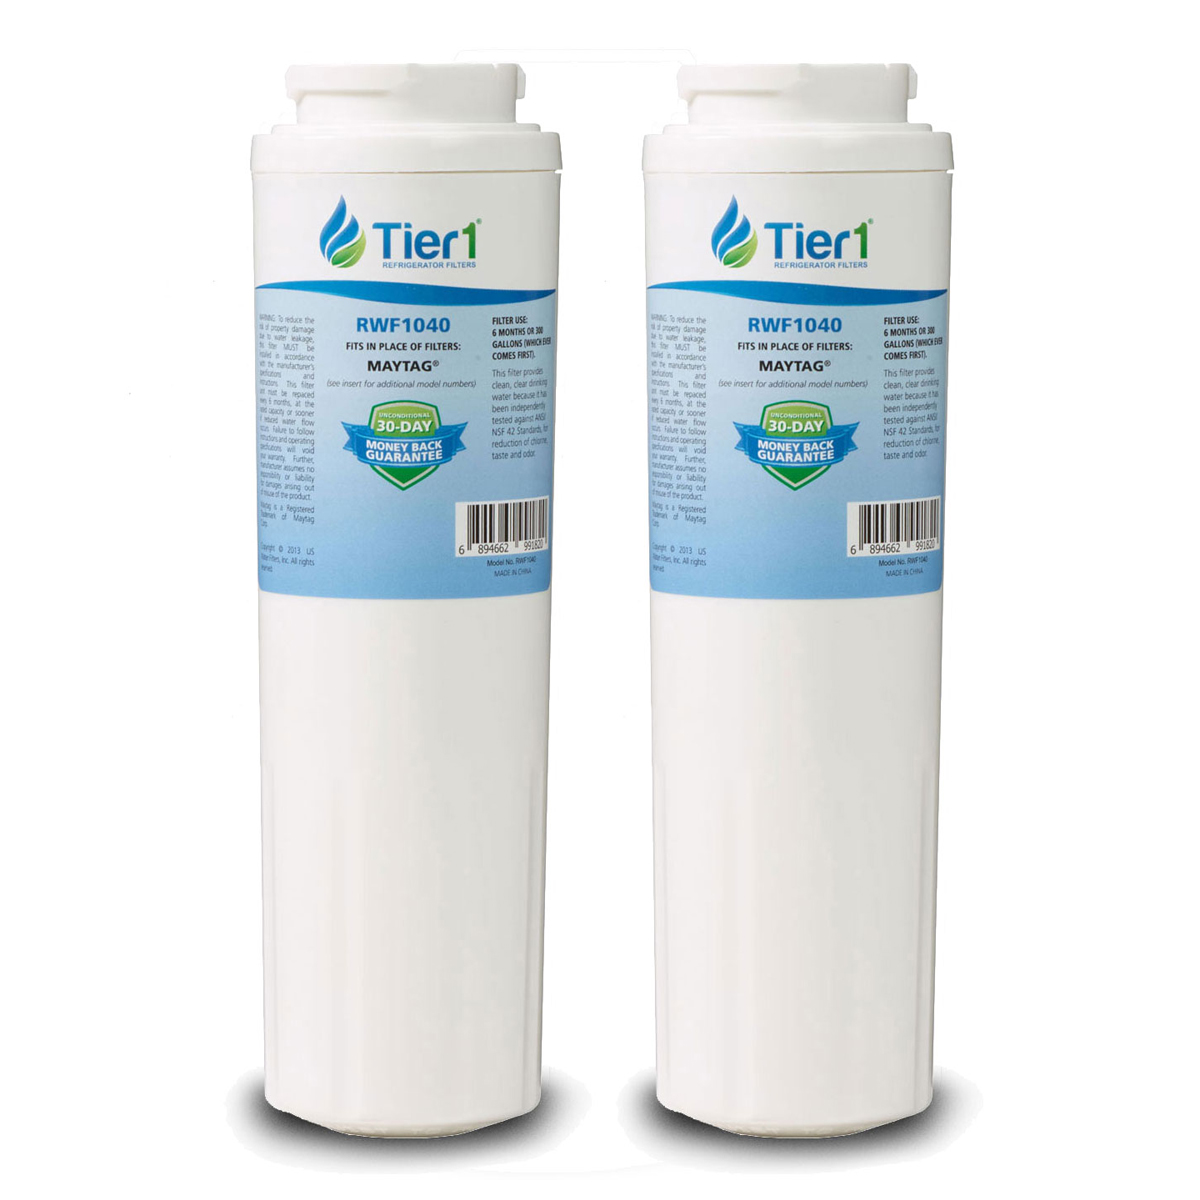 EDR4RXD1 EveryDrop UKF8001 Maytag Comparable Refrigerator Water Filter Replacement By Tier1 (2 Pack) TIER1_RWF1040_2_PACK